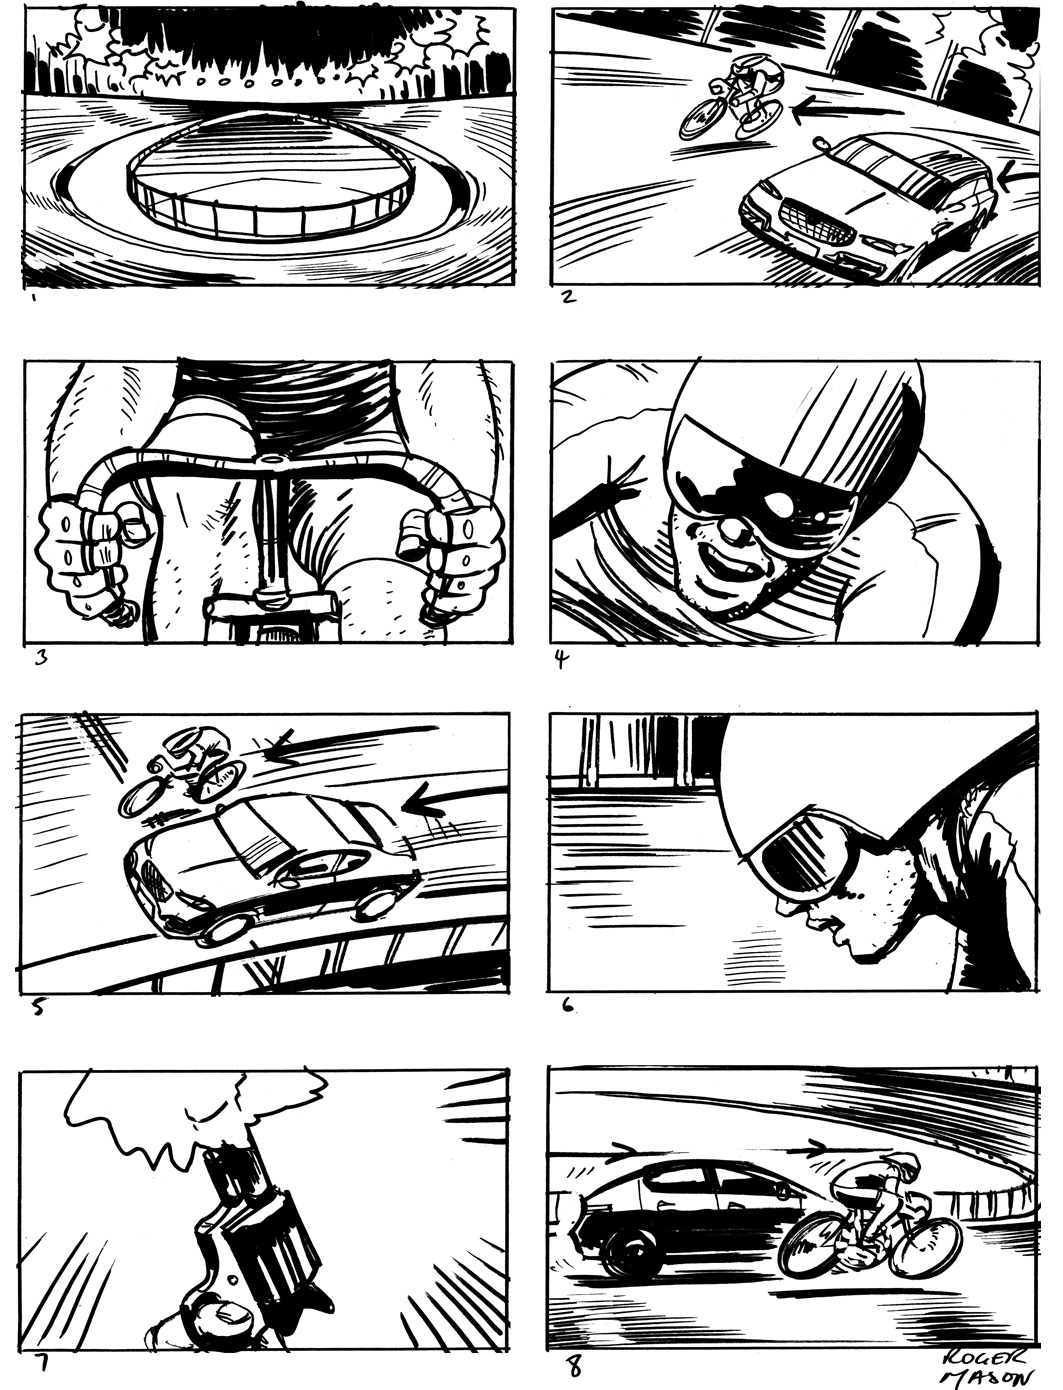 Jaguar cars board for Squire Studio. Storyboard artist Roger Mason